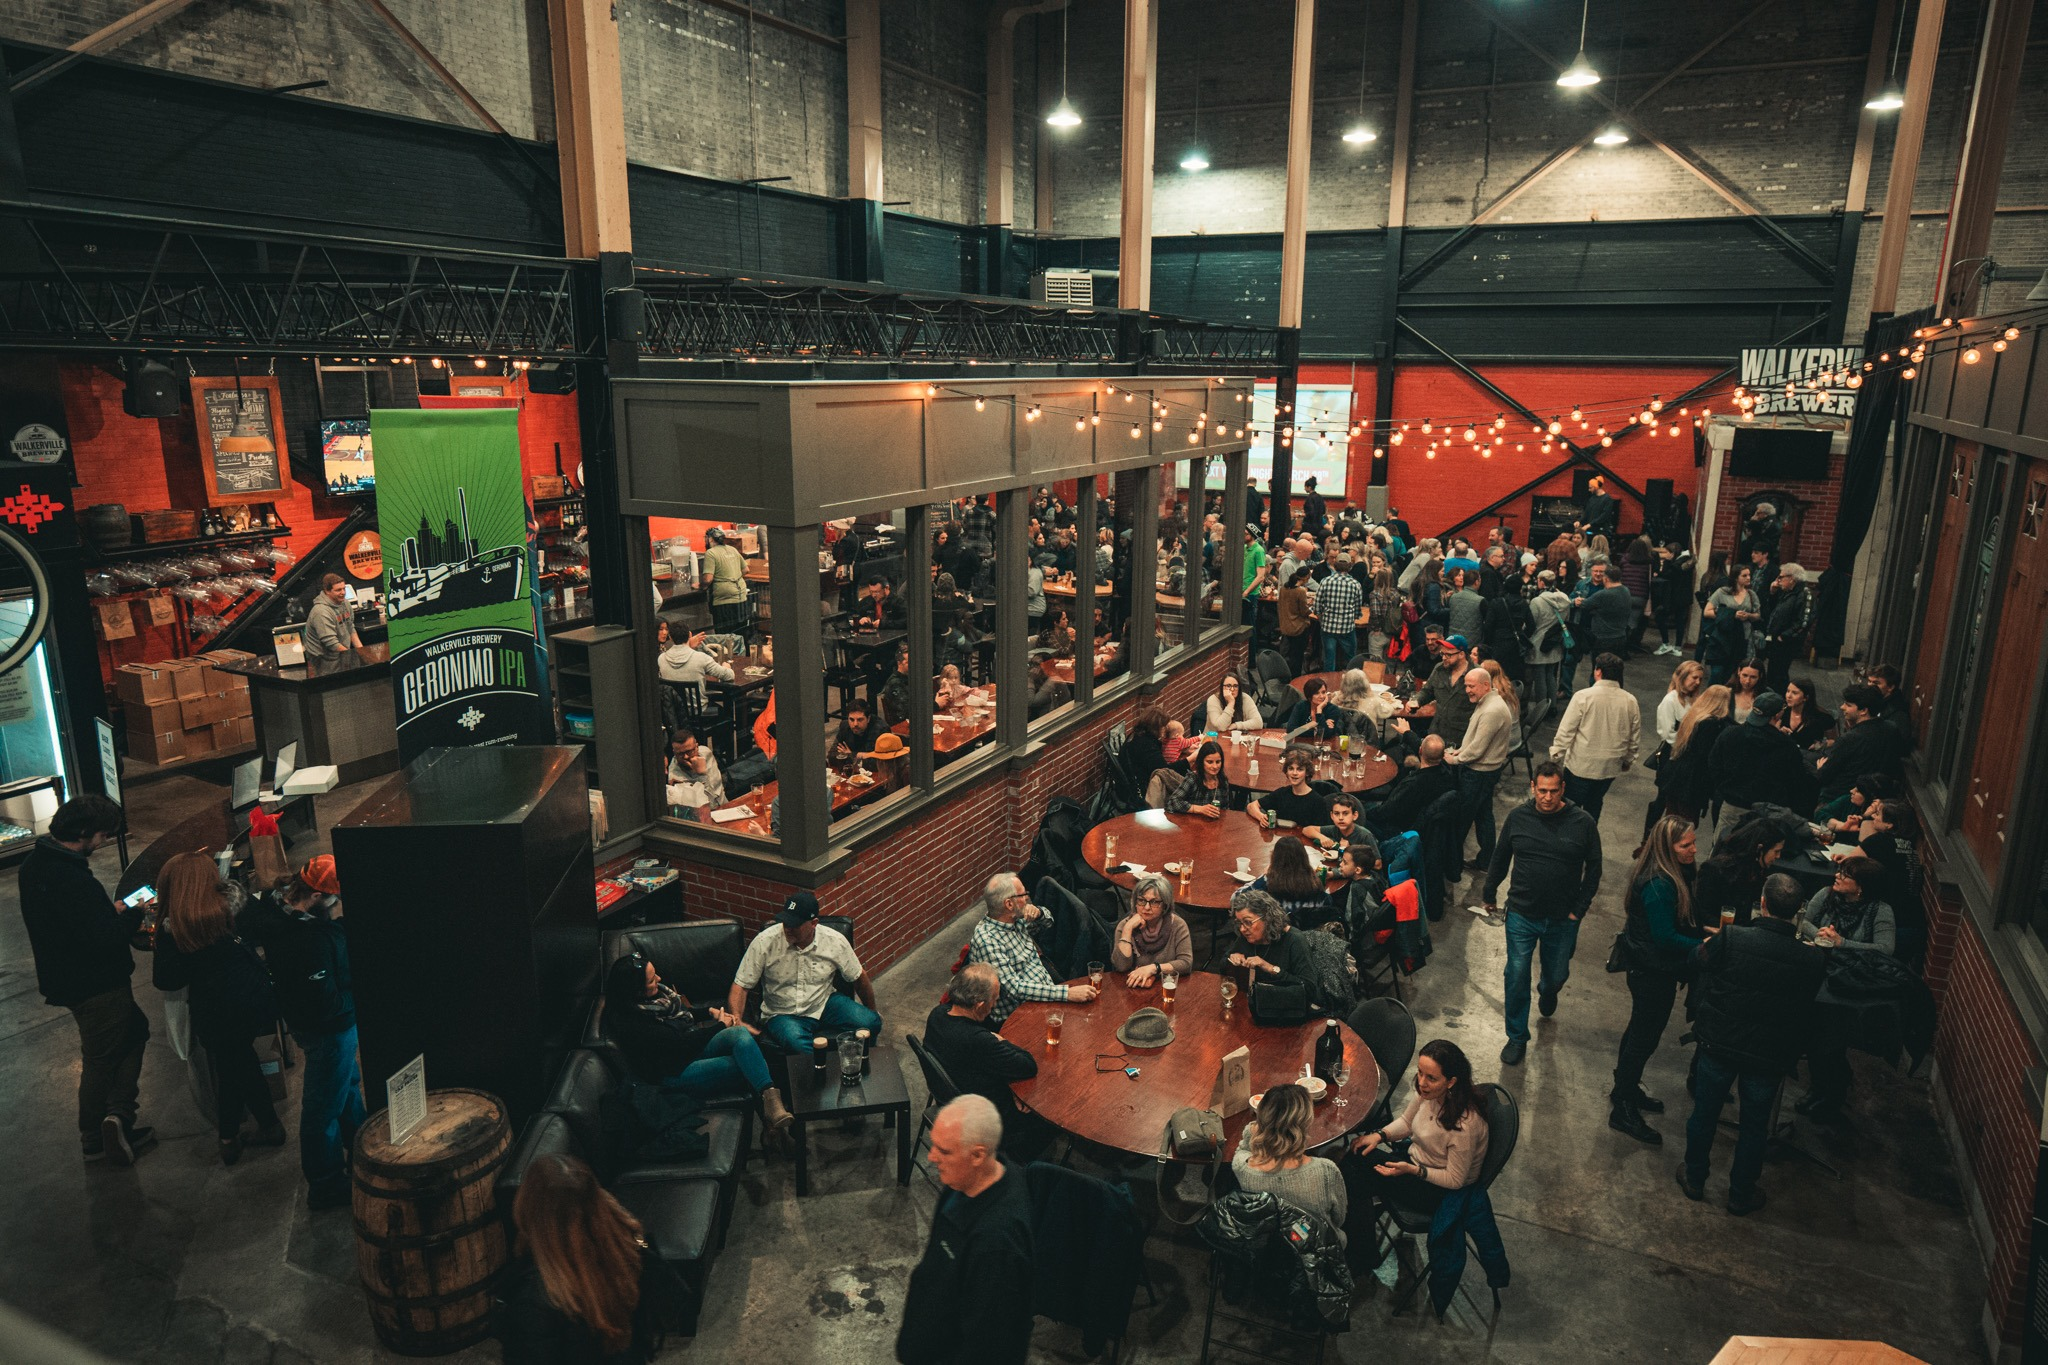 Crowds at Walkerville Brewery in Windsor, Ontario.